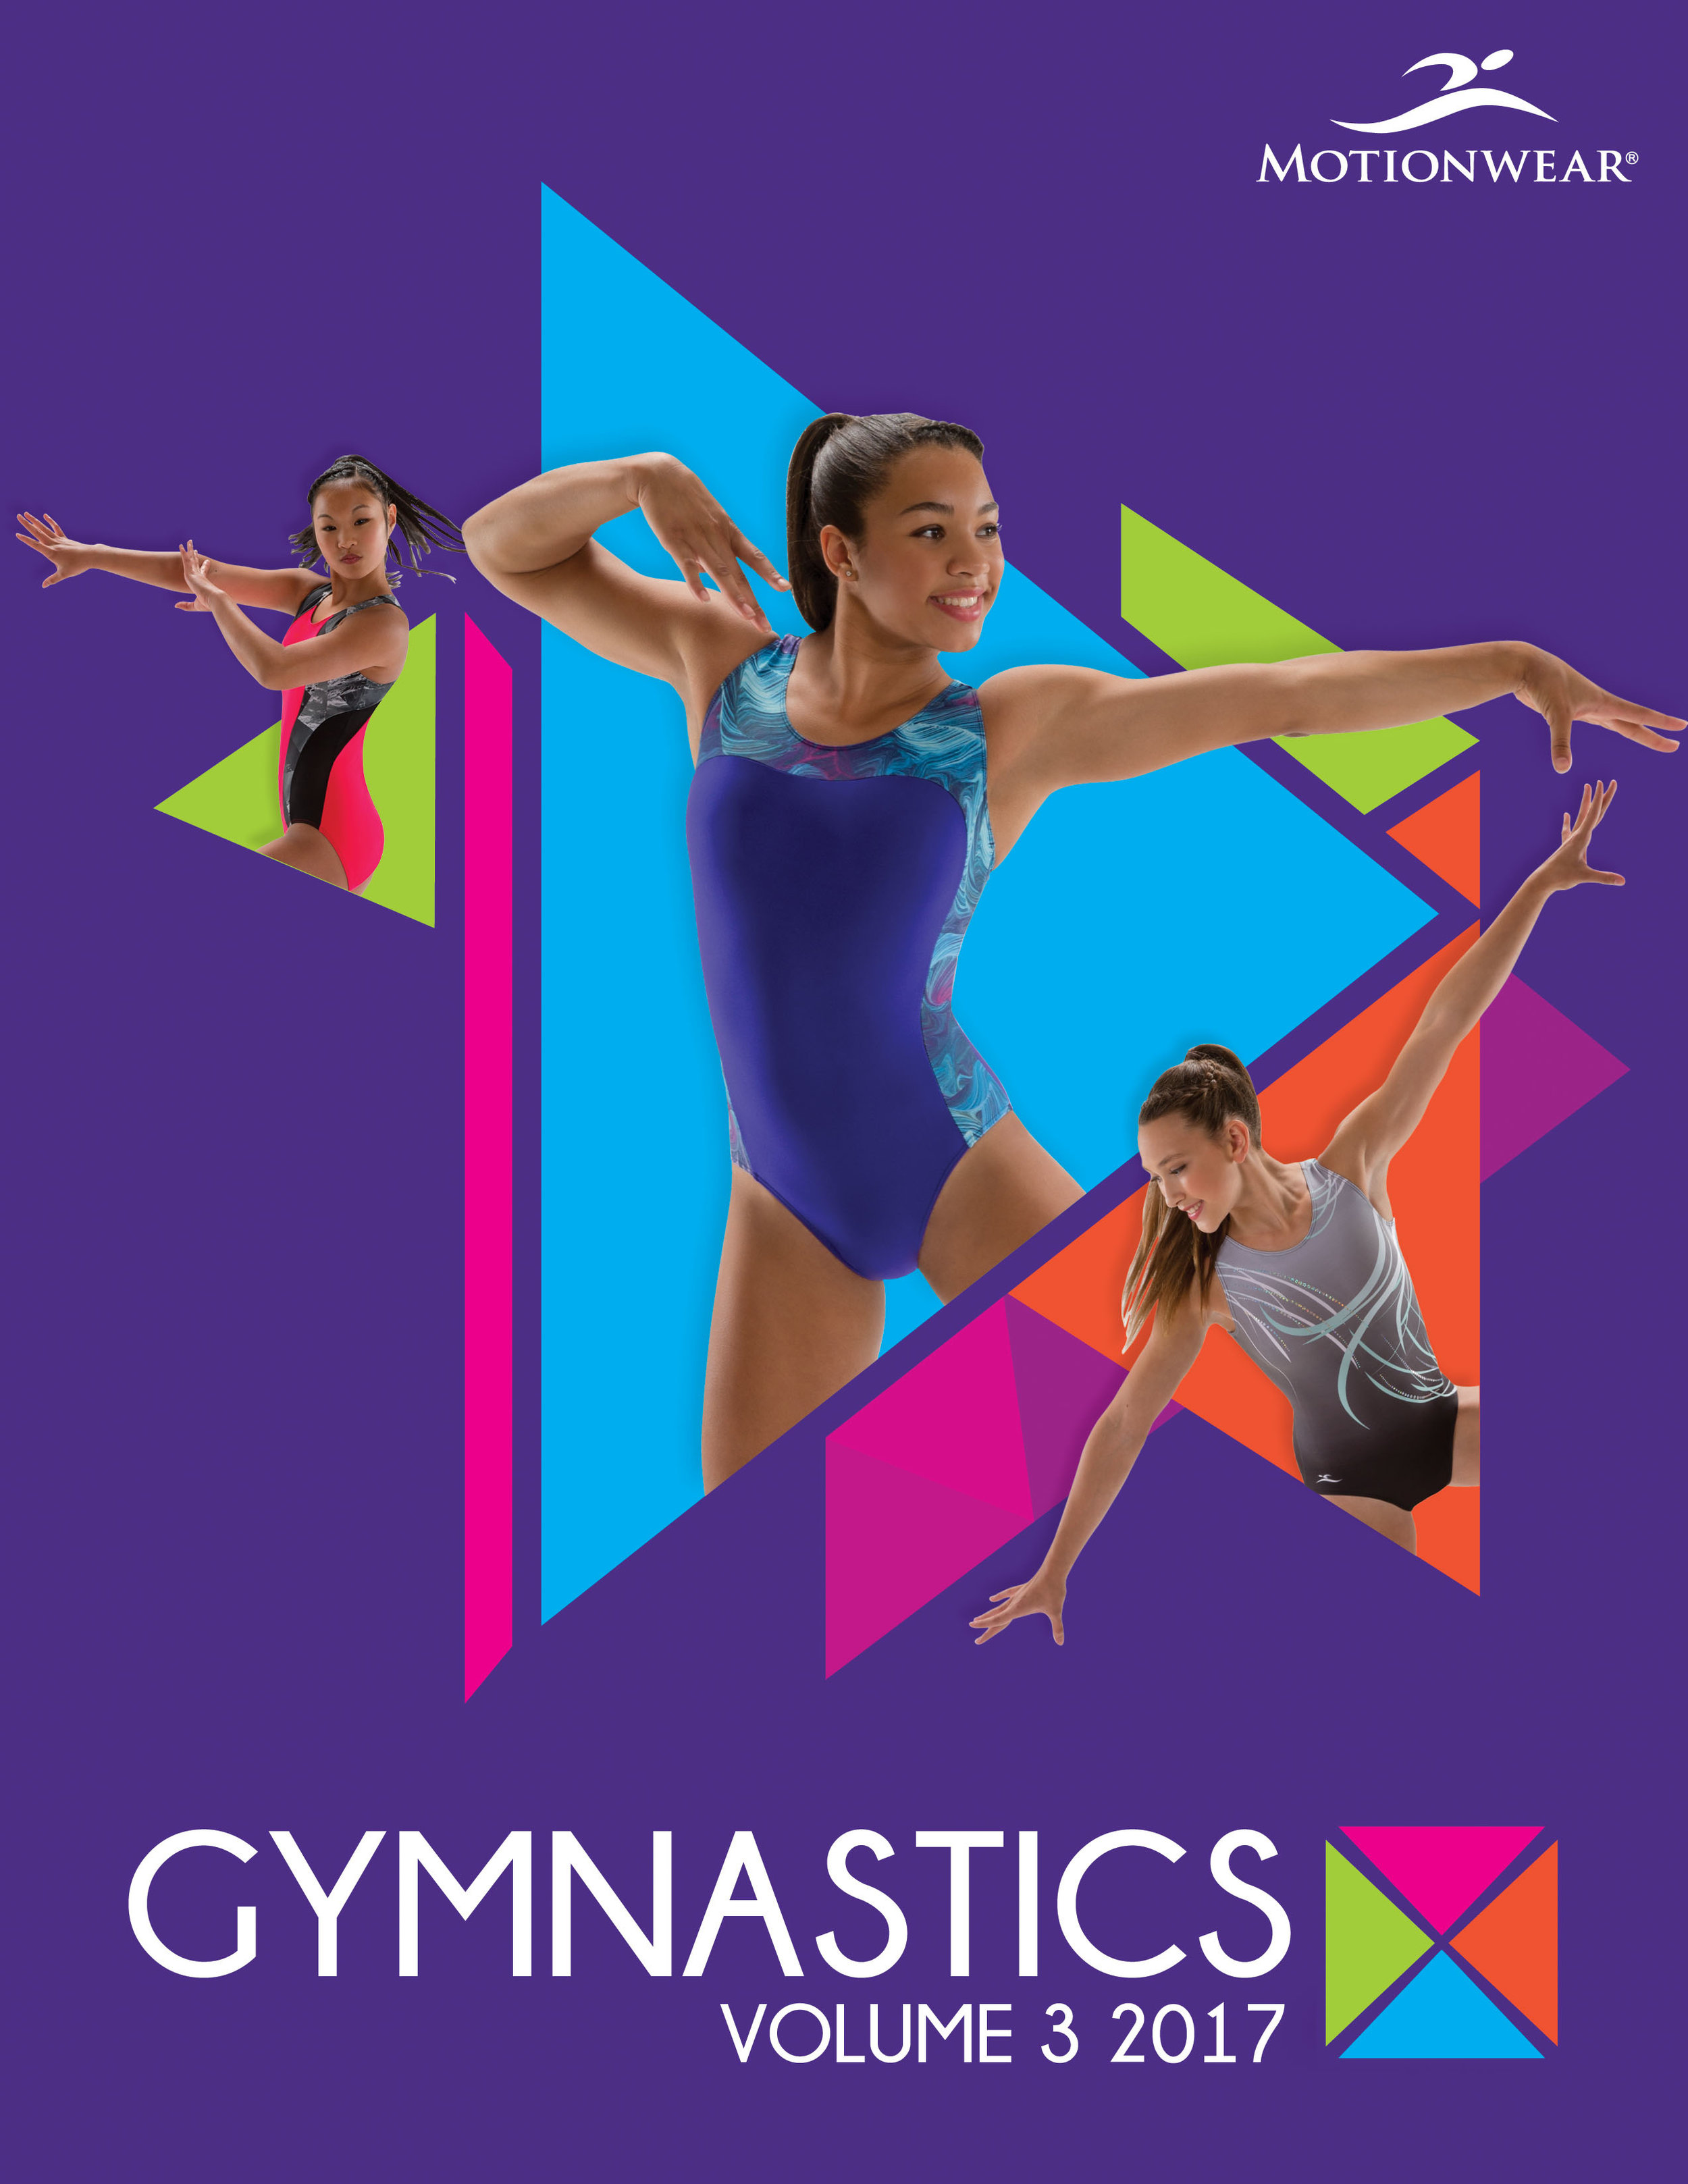 - Project:Gymnastics Fashion: Vol 3, 2017 CatalogRole: Graphic DesignerCollaborated with: Director of Sales & Marketing, Creative Director,Gymnastics Division Manager and Fabric Development Specialist